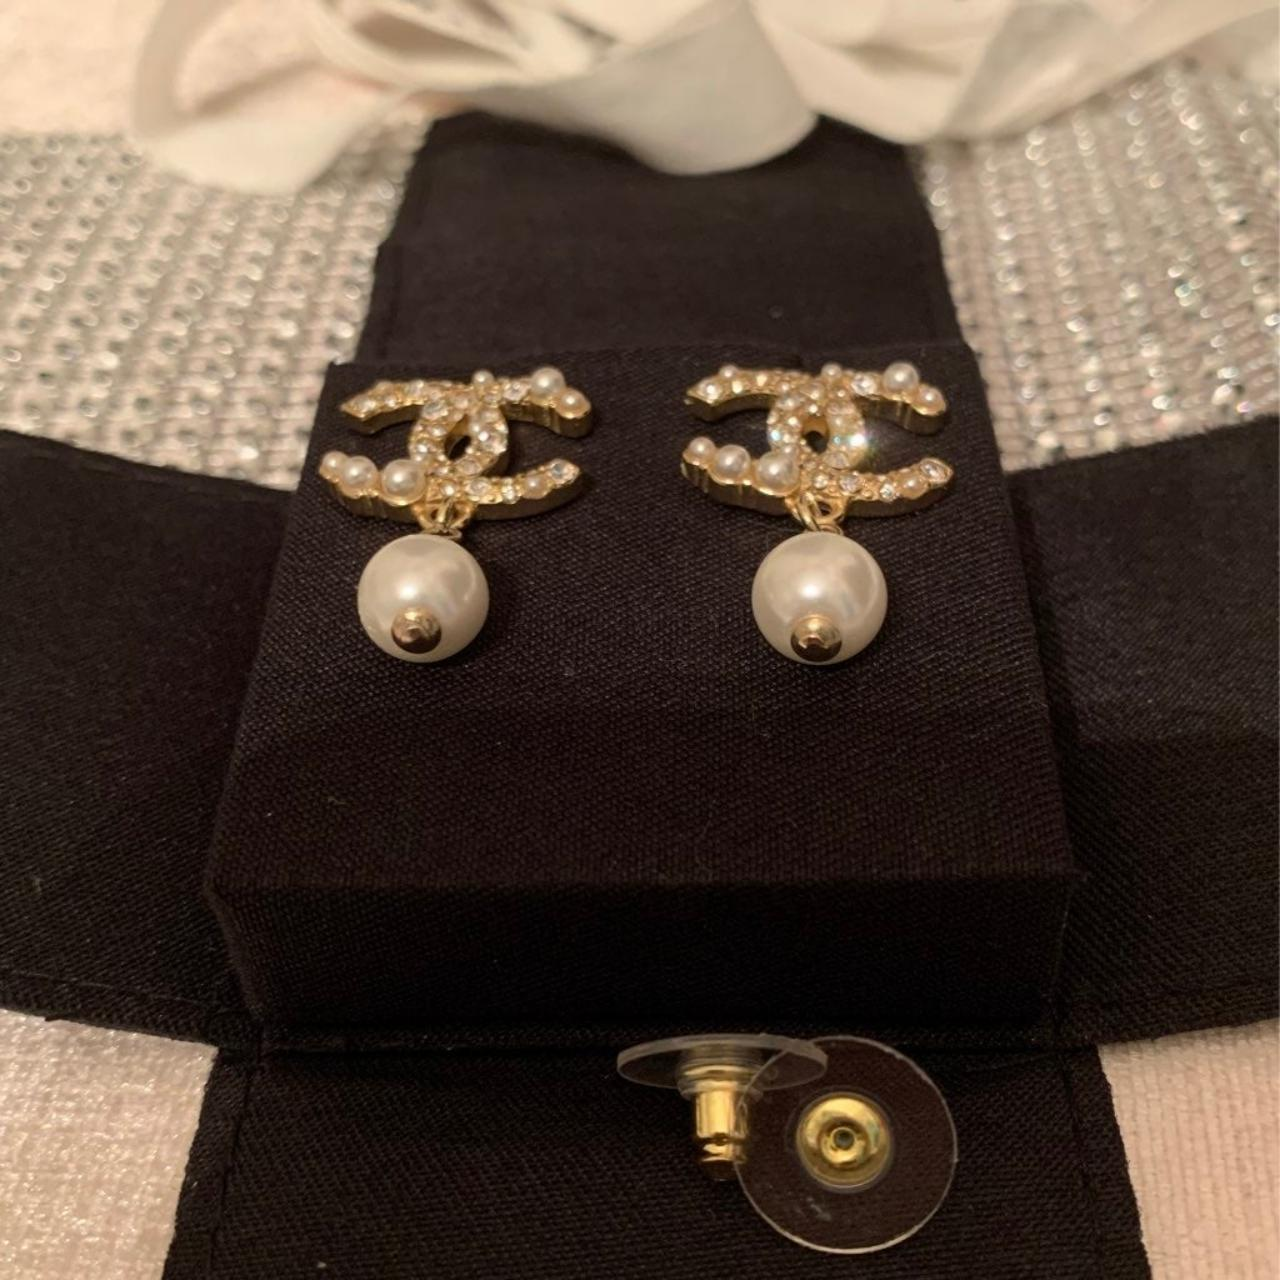 Product Image 1 - Authentic Chanel Pearl Drop Earrings